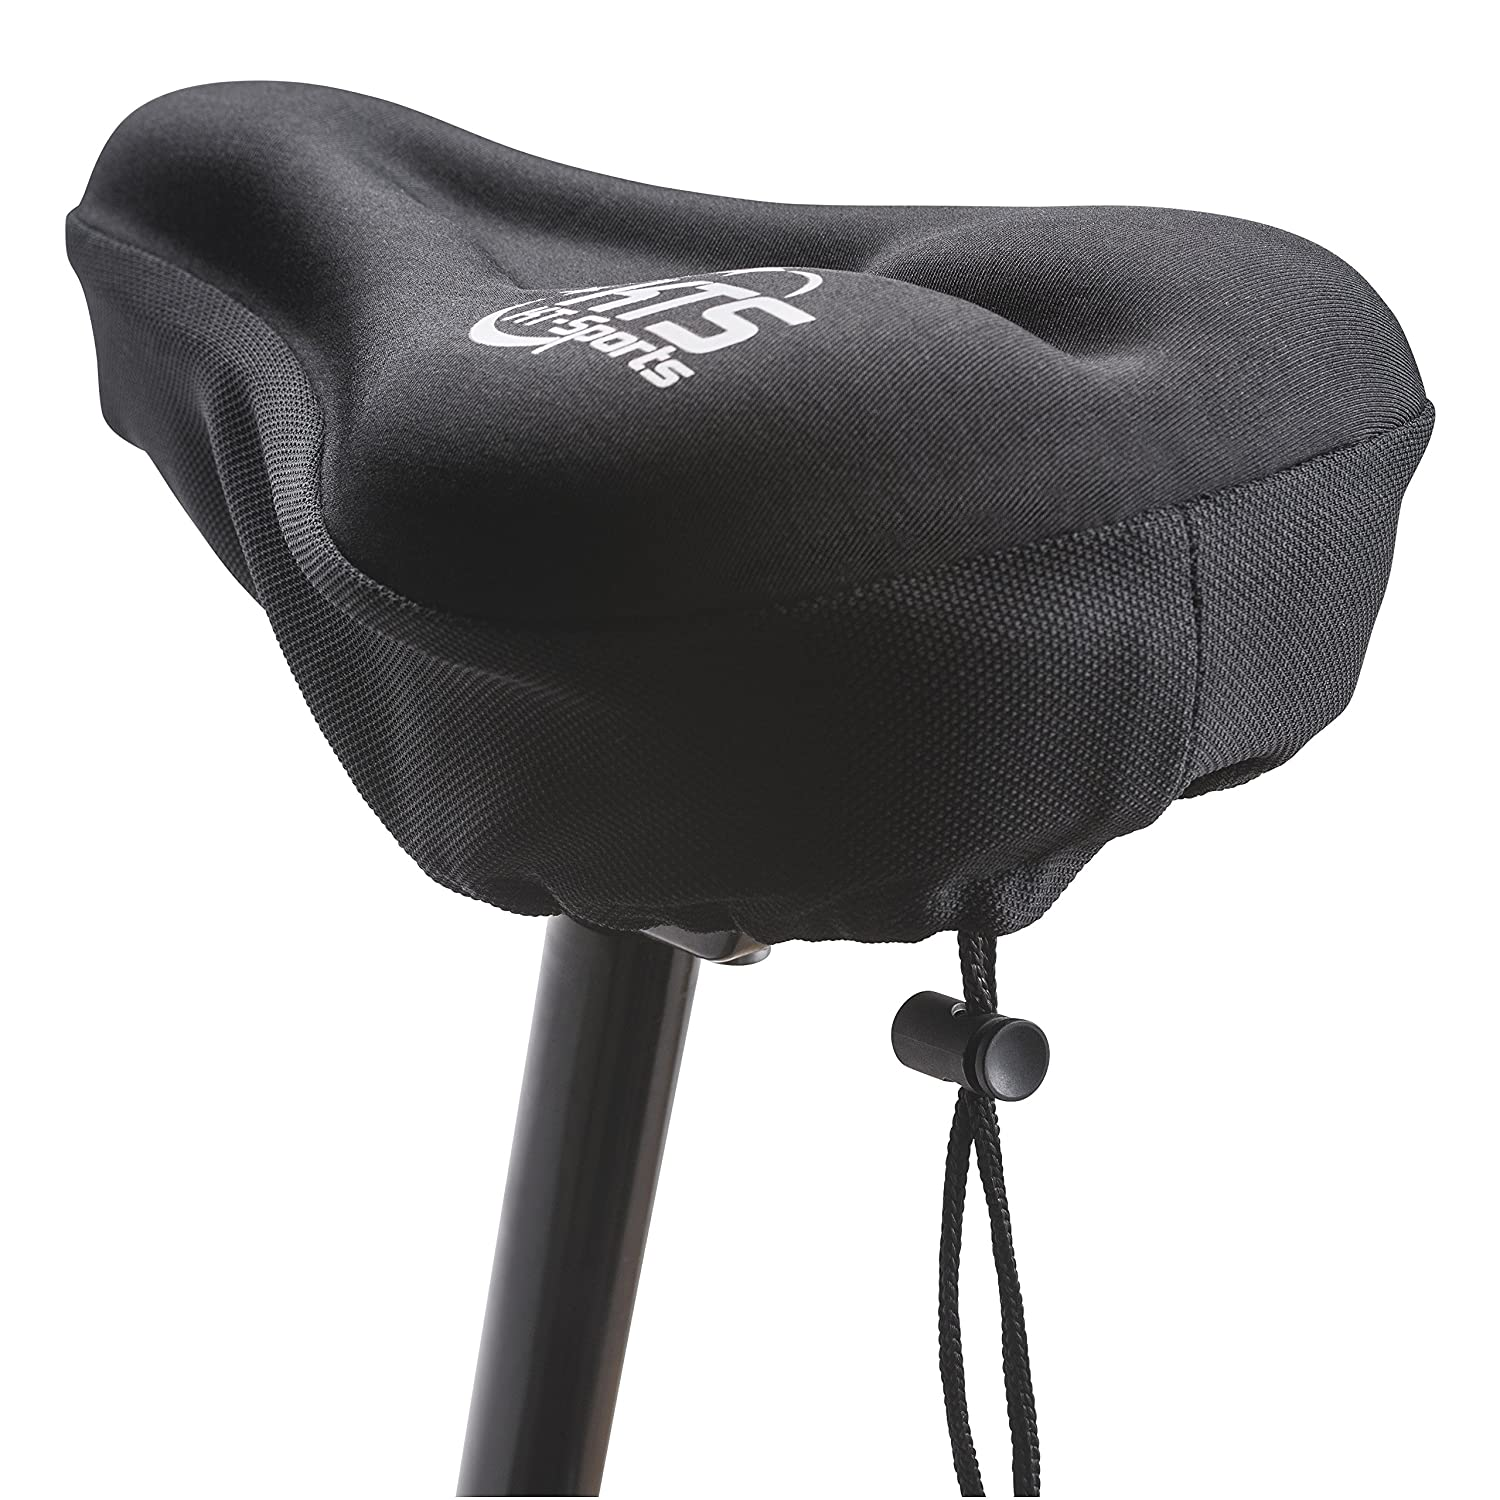 Gel Bike Seat Cover Kt Sports Bike Saddle Cover The Most